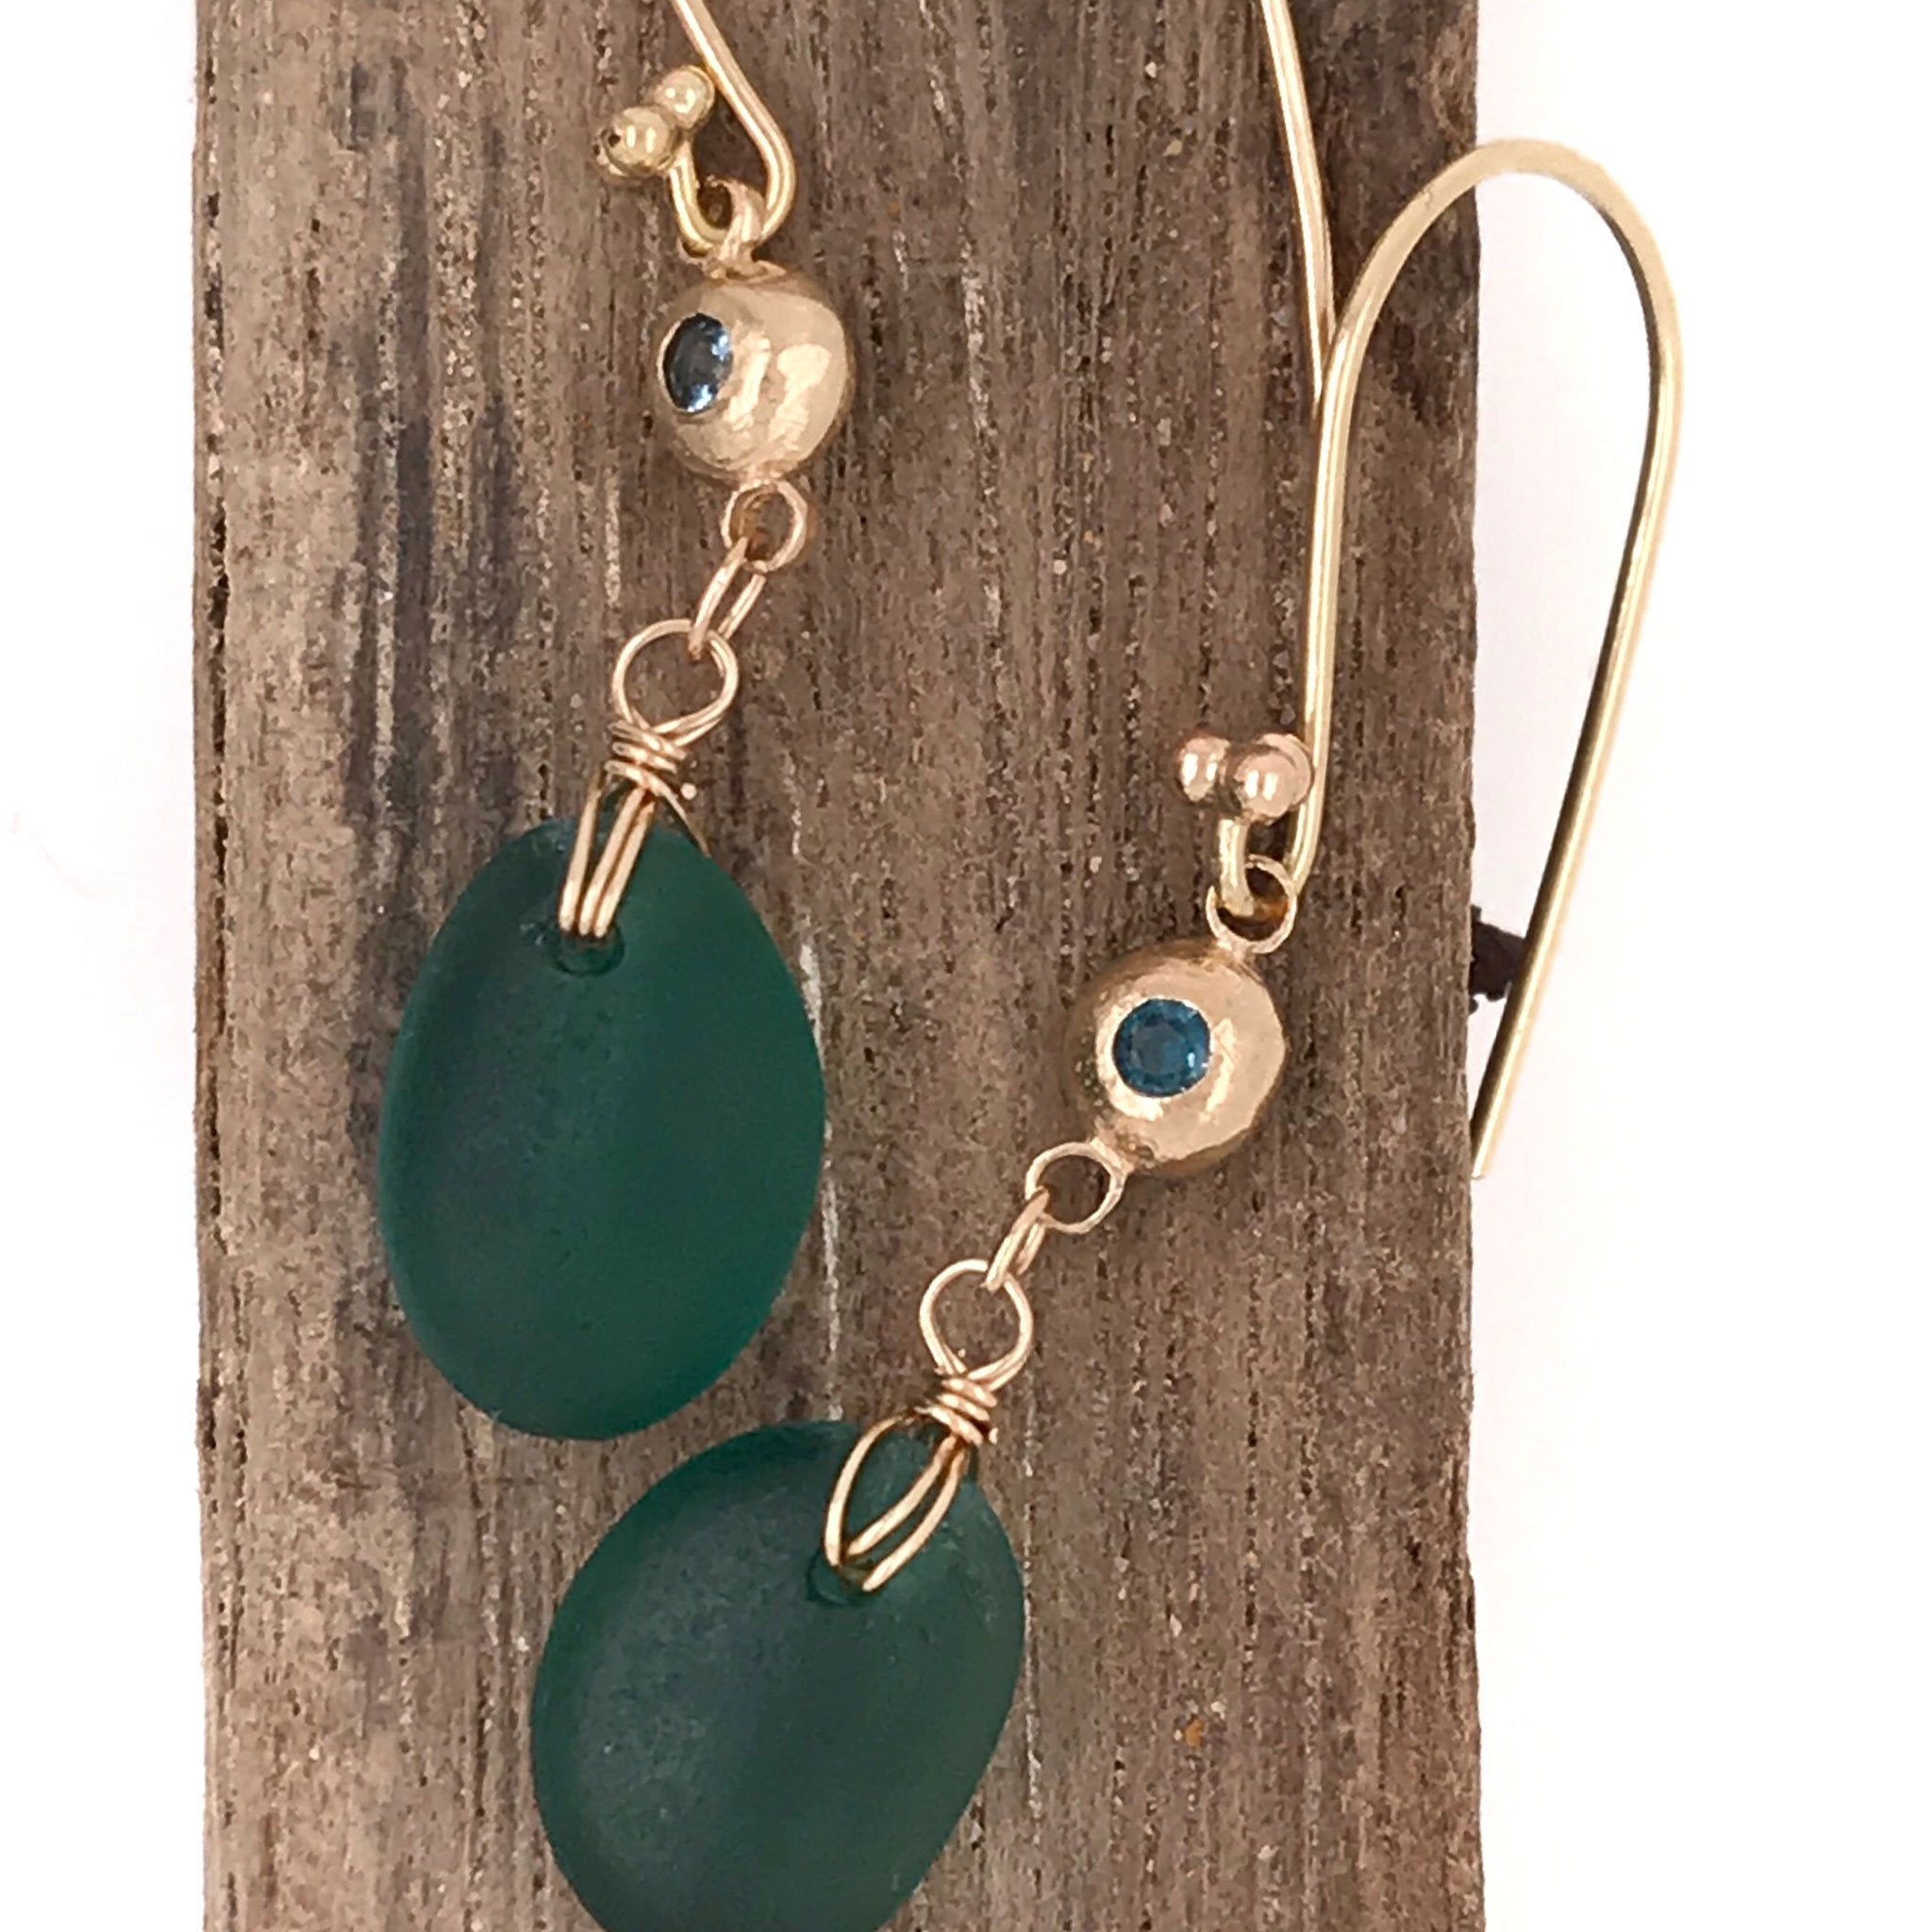 14k gold earrings with teal seaglass and tourmalines Kriket Broadhurst jewellery